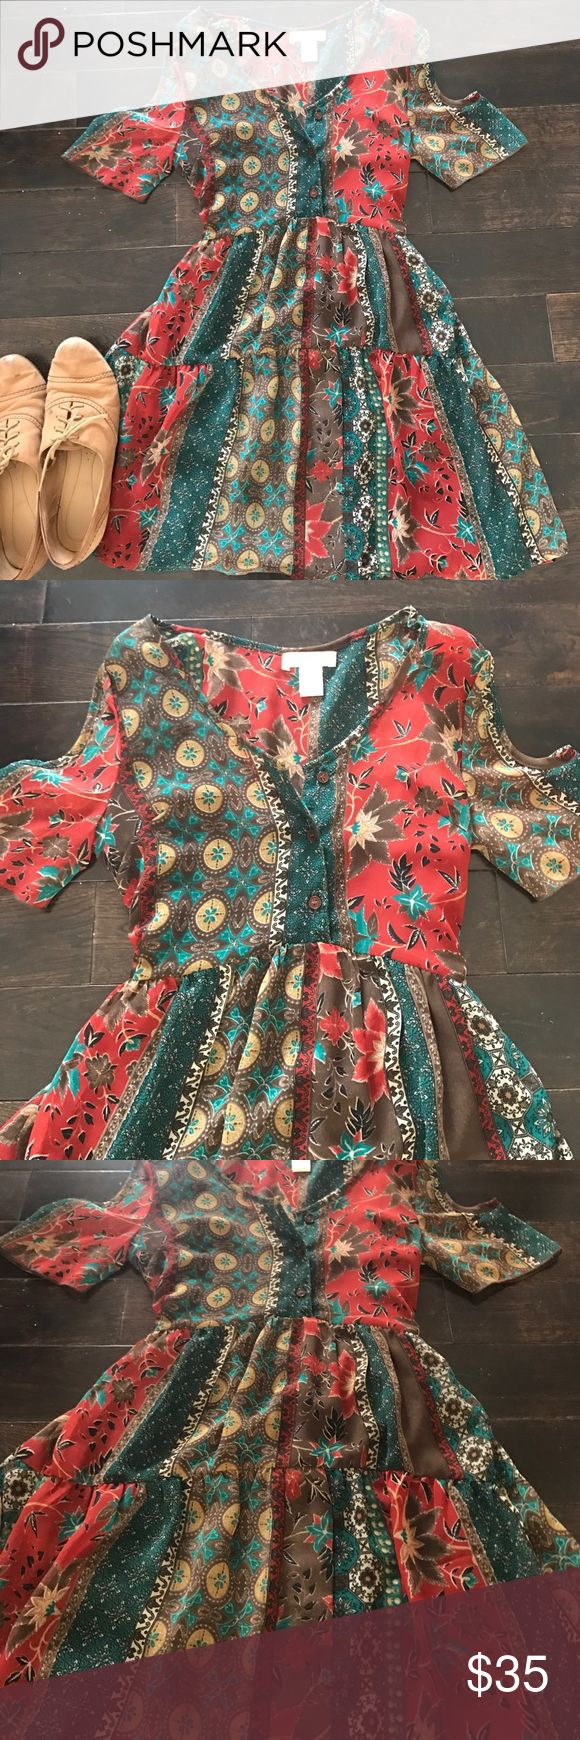 Cold Shoulder Boho Patterned Dress🌿 So so pretty! Size small. Wear with gladiator sandals or boots! Flowy. Has slip underneath! Band of Gypsies Dresses Mini